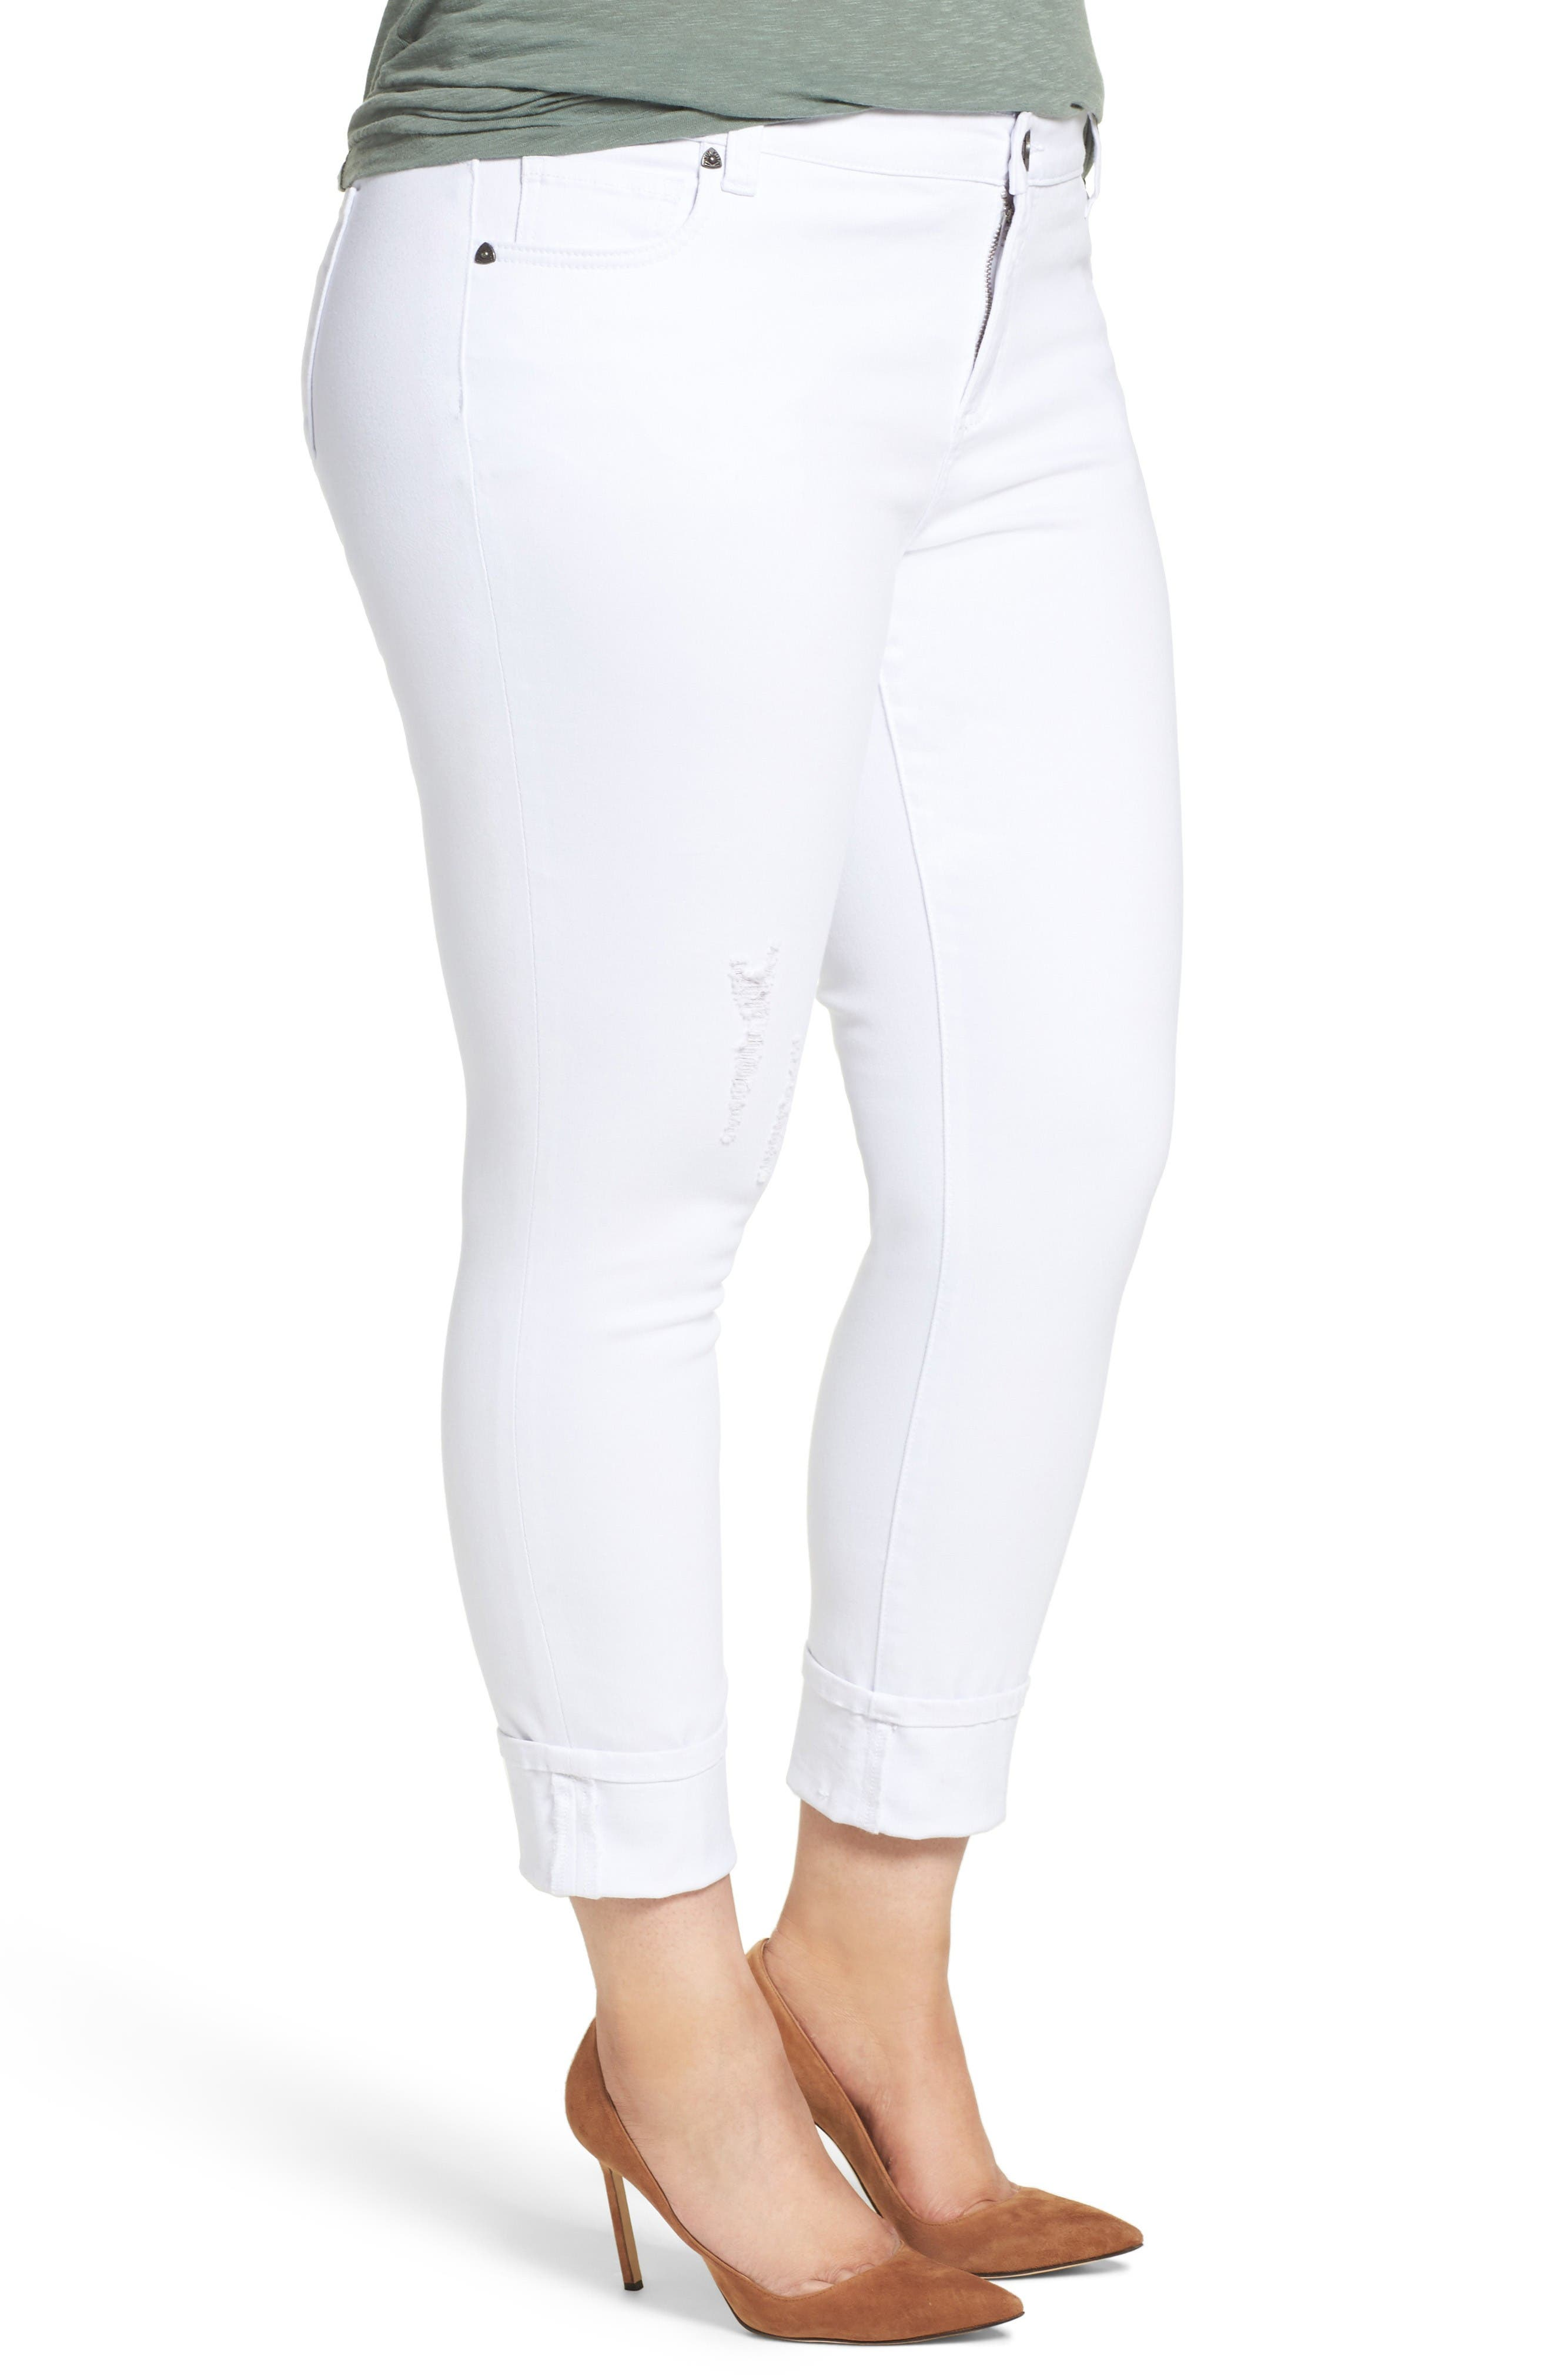 Catherine Distressed Wide Cuff Boyfriend Jeans,                             Alternate thumbnail 3, color,                             Optic White